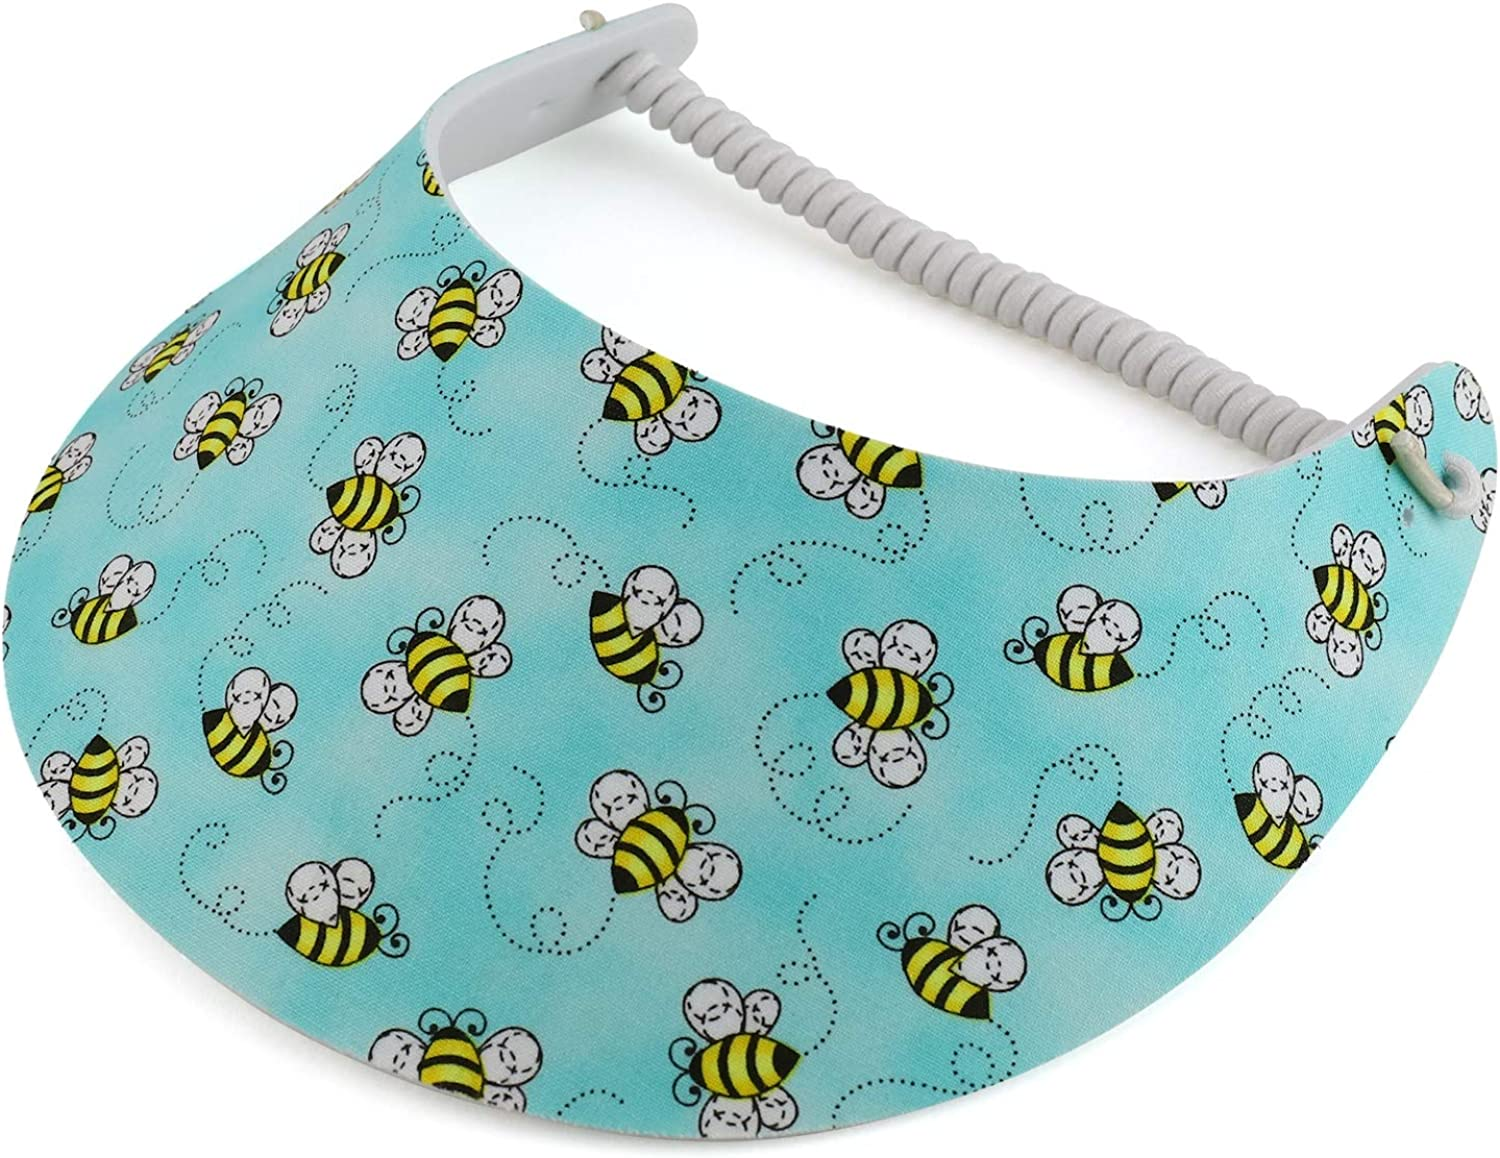 Trendy Apparel Shop Made in USA Insects Elastic String Coil Foam Sun Visors